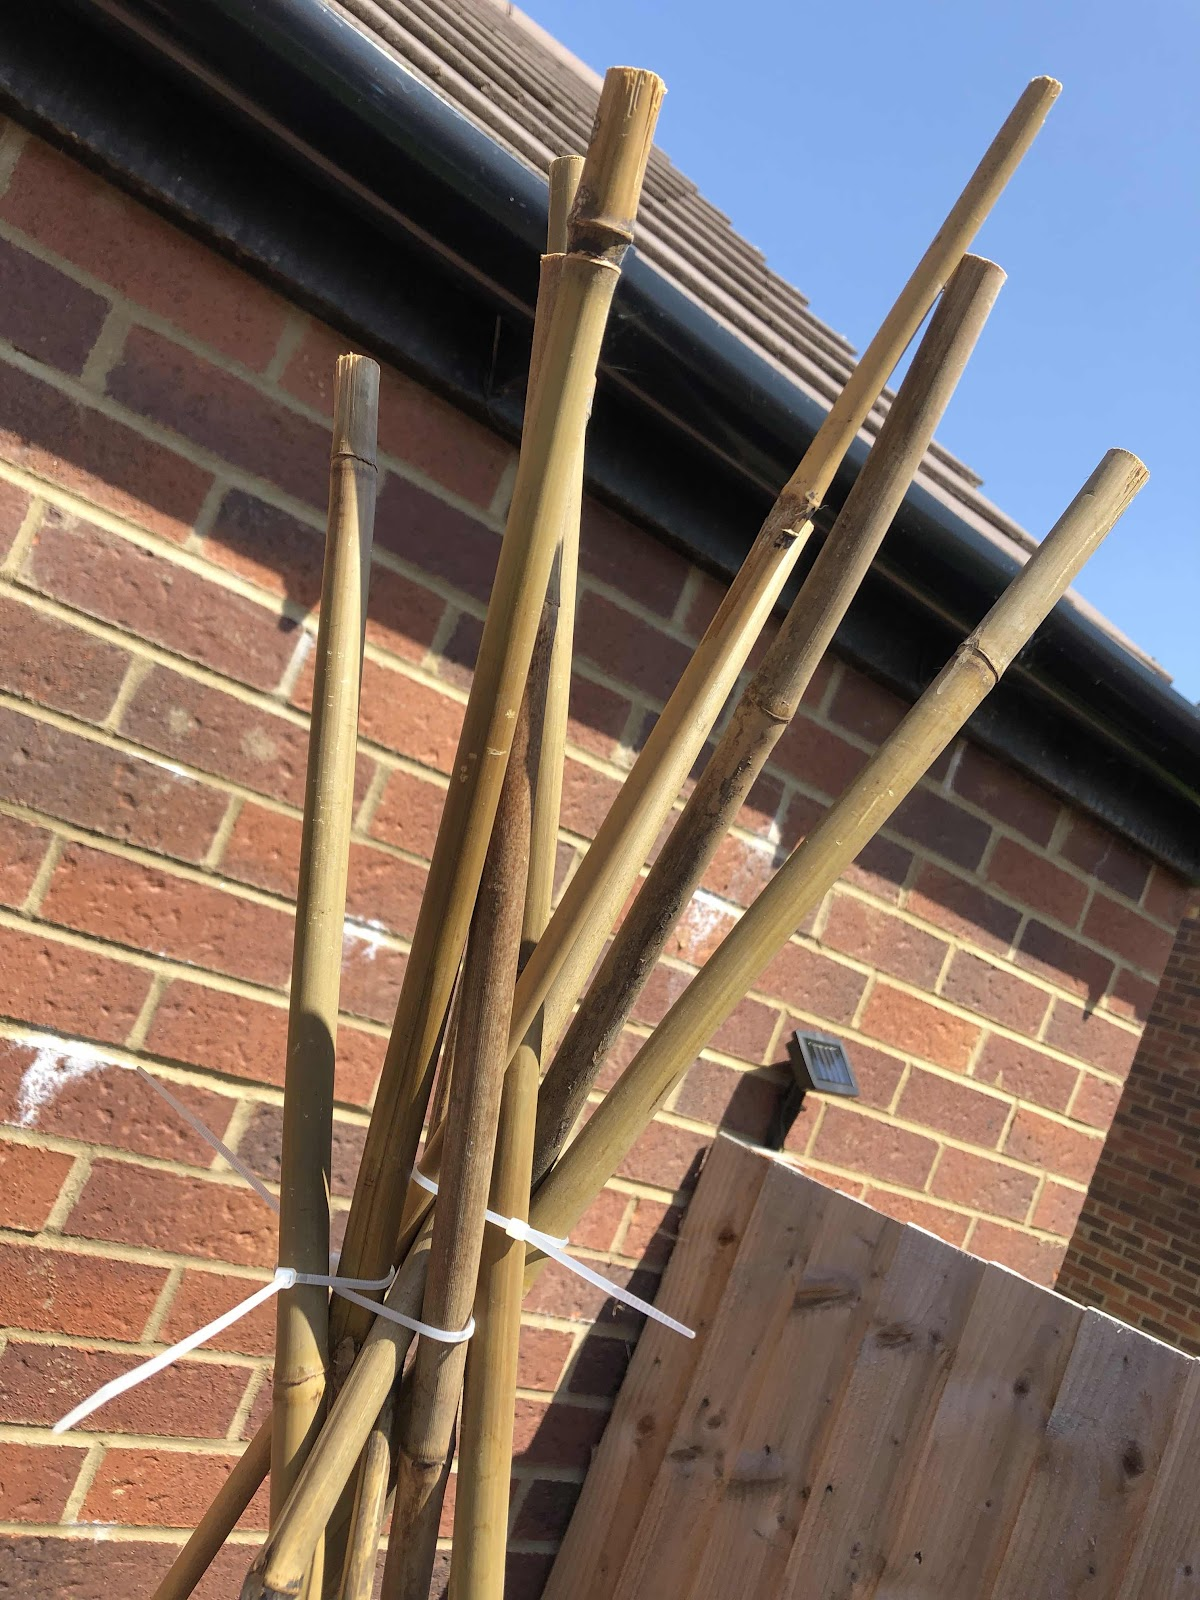 Fasten bamboo canes with cable ties